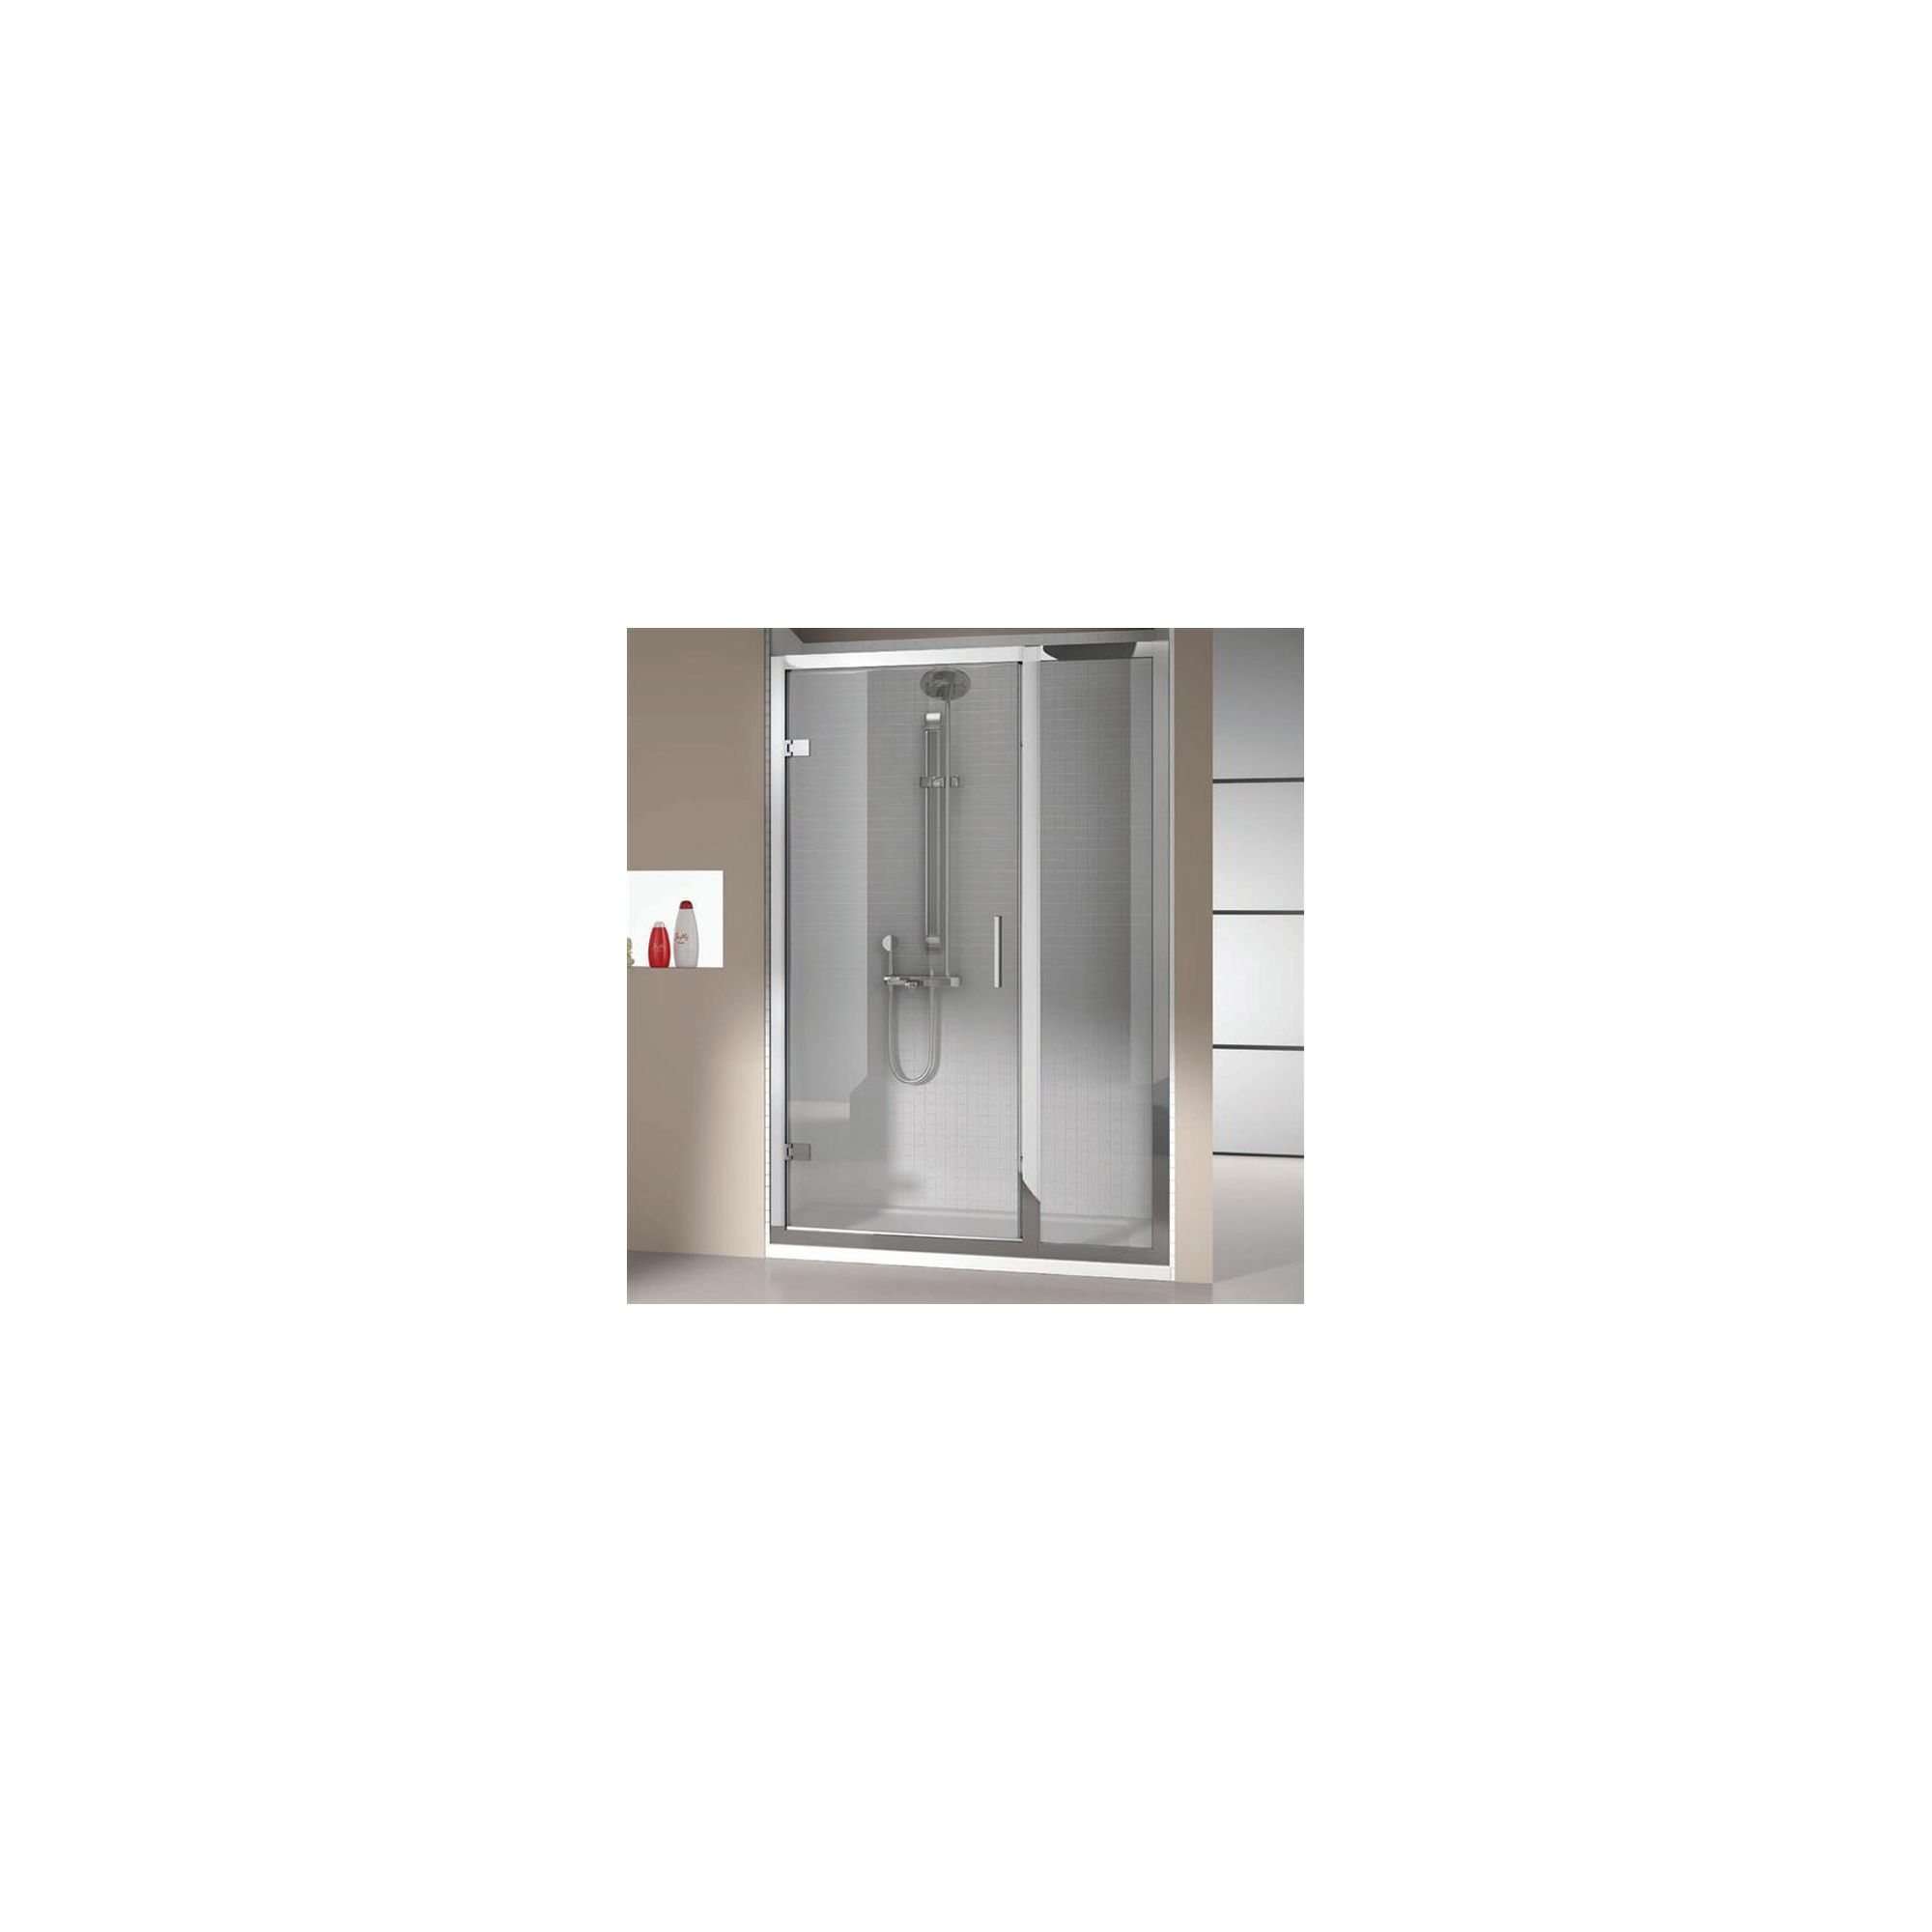 Merlyn Vivid Eight Hinged Shower Door with Inline Panel, 1400mm Wide, 8mm Glass at Tescos Direct